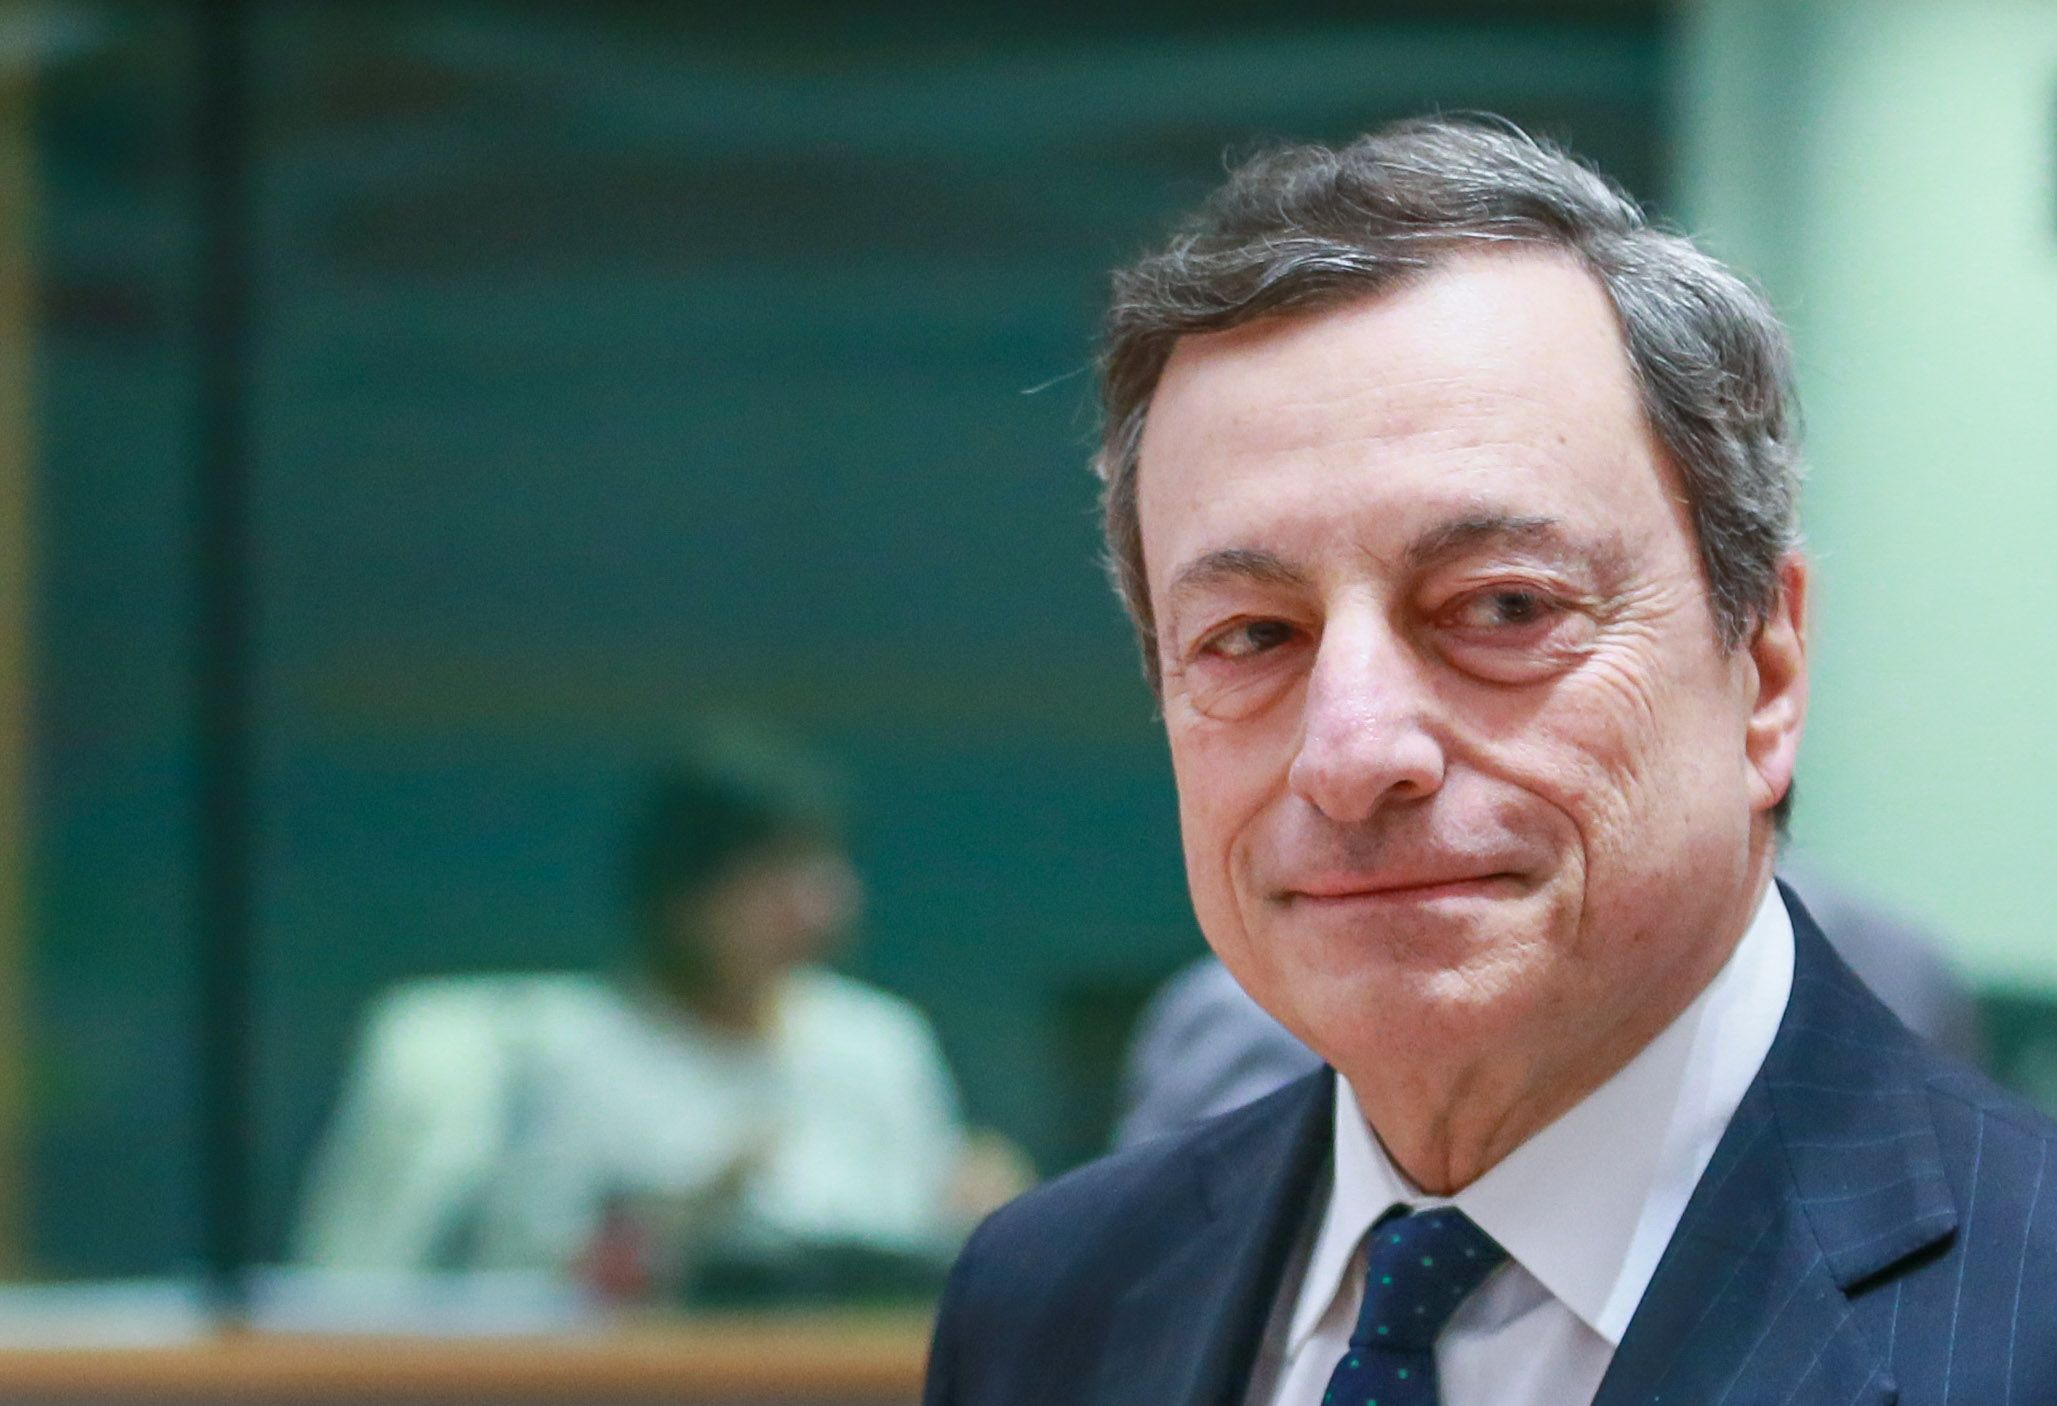 Mario DraghiEurogroup Finance Ministers meeting in Brussels, Belgium - 24 May 2018 European Central Bank (ECB) President Mario Draghi (R) waits for the start of an Eurogroup Finance Ministers' meeting at the European Council in Brussels, Belgium, 24 May 2018.